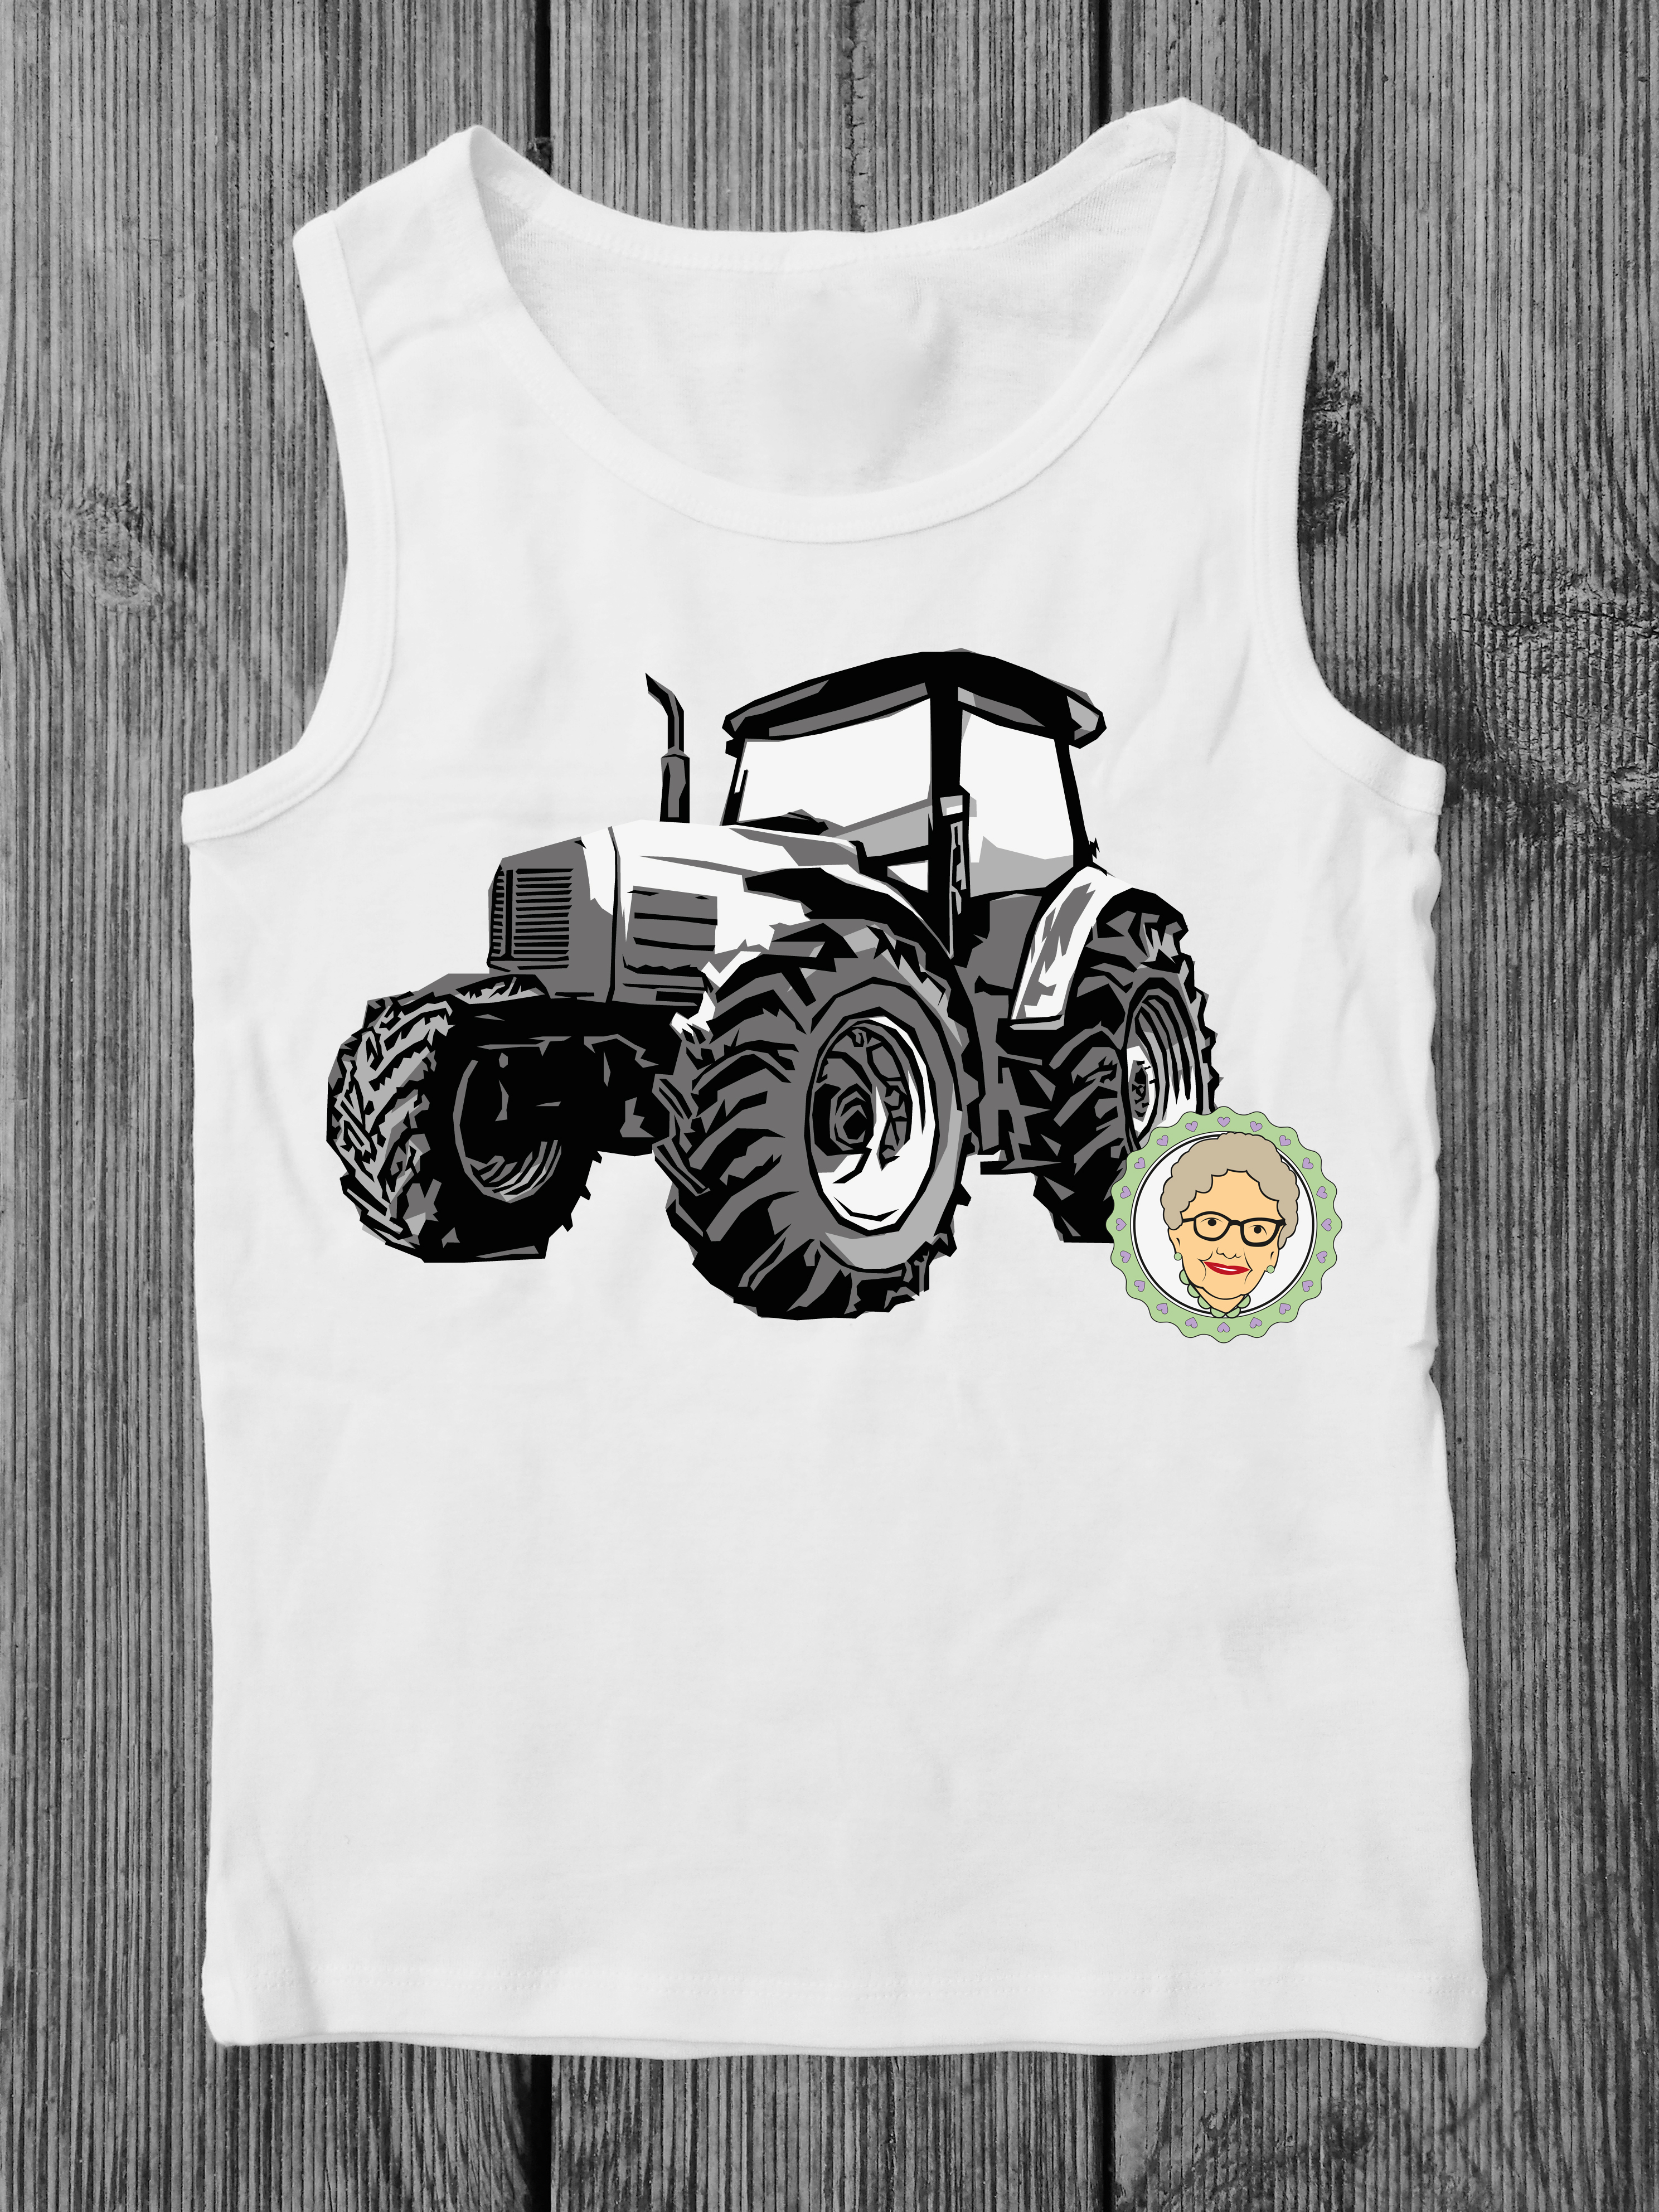 Cutting file tractor - multicolored cool toeing vehicle, with manual